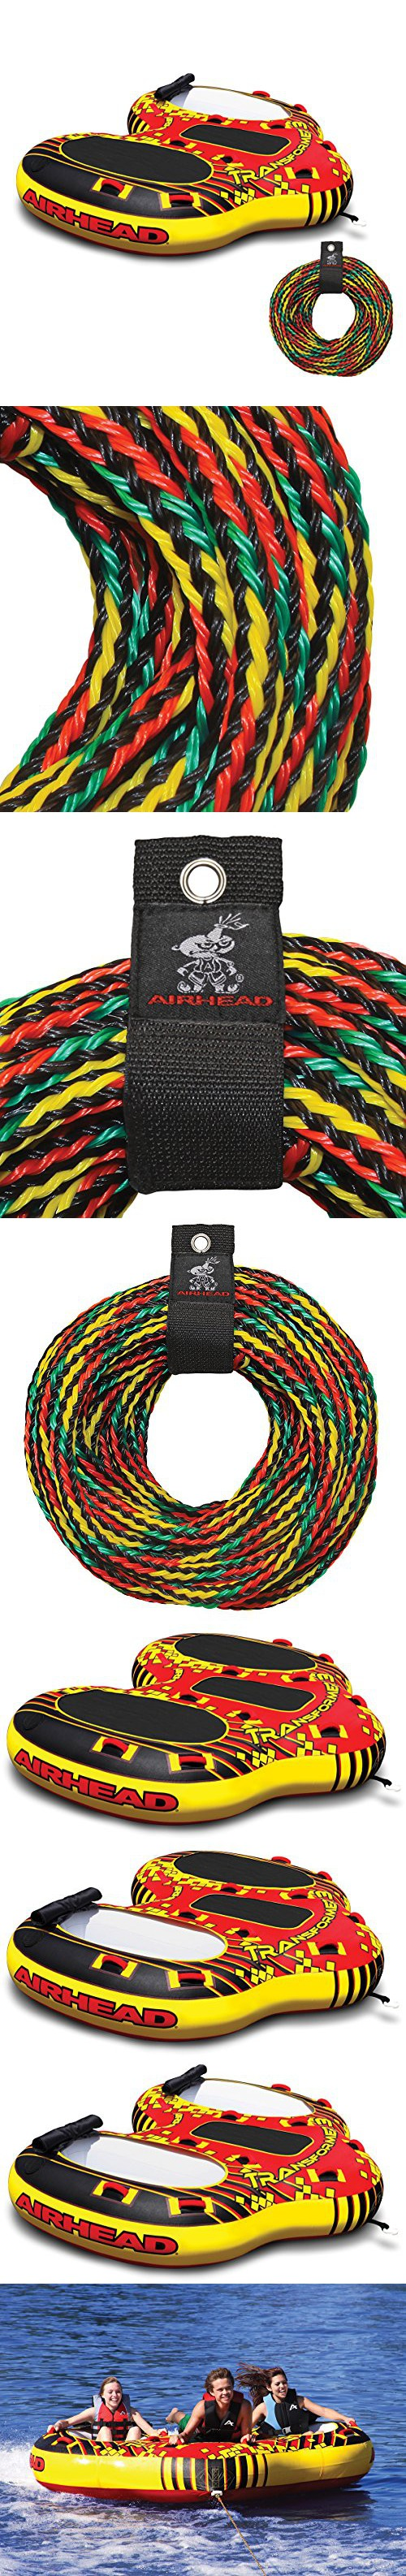 Airhead Transformer 3 Rider Towable Tube 60 Foot Tow Rope Harness For Towables